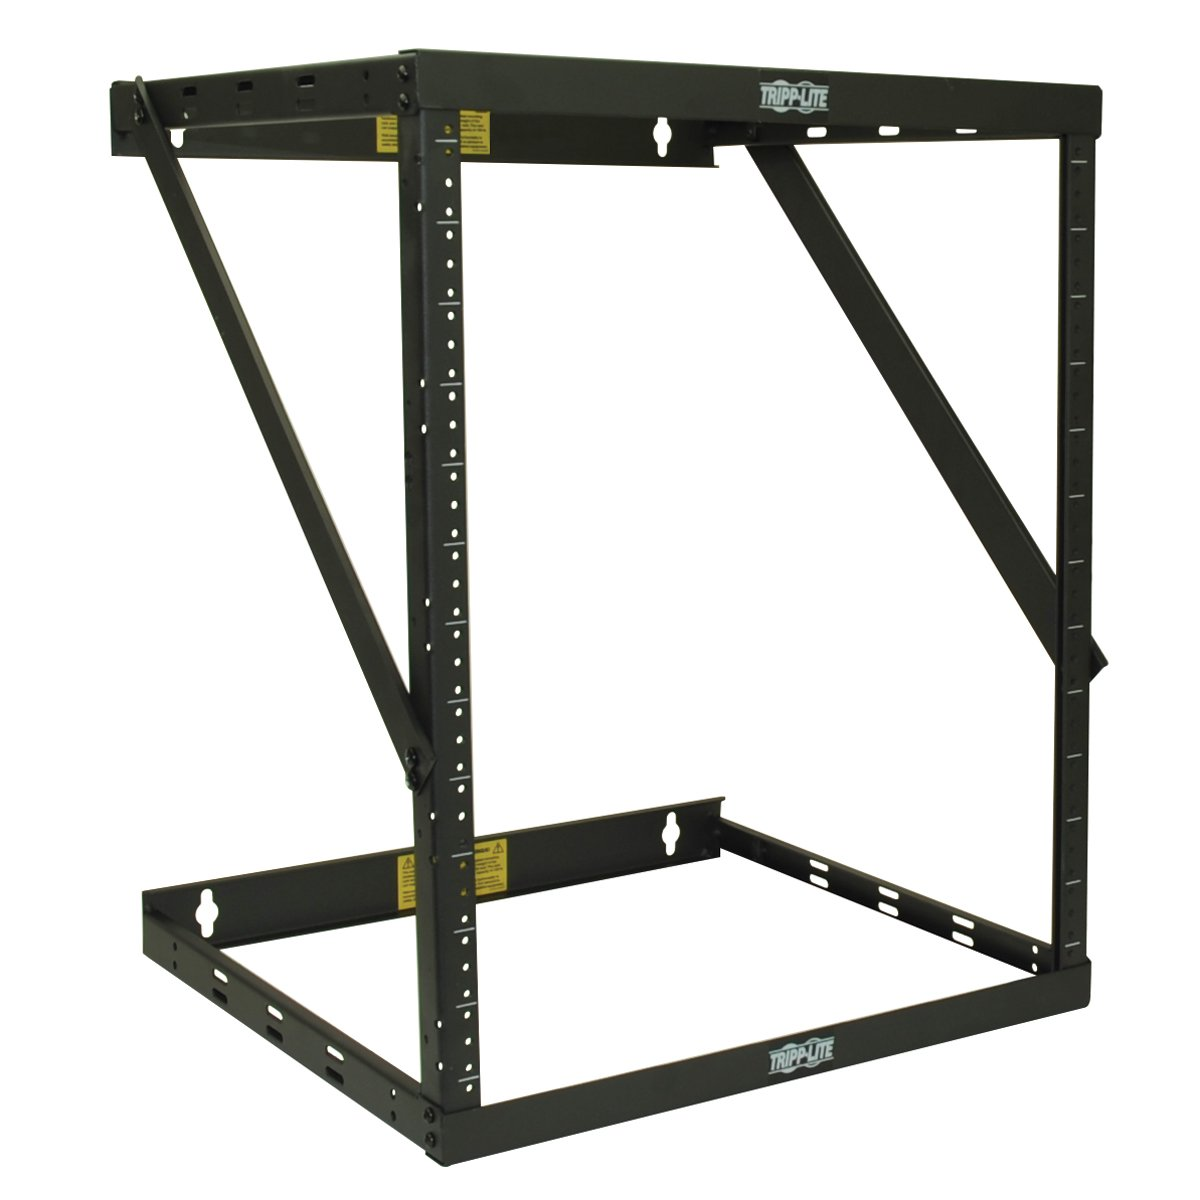 Tripp Lite 8U/12U/22U Expandable Wall-Mount 2-Post Open Frame Rack, Adjustable Network Equipment Rack, Switch Depth, 18'' Deep (SRWO8U22)